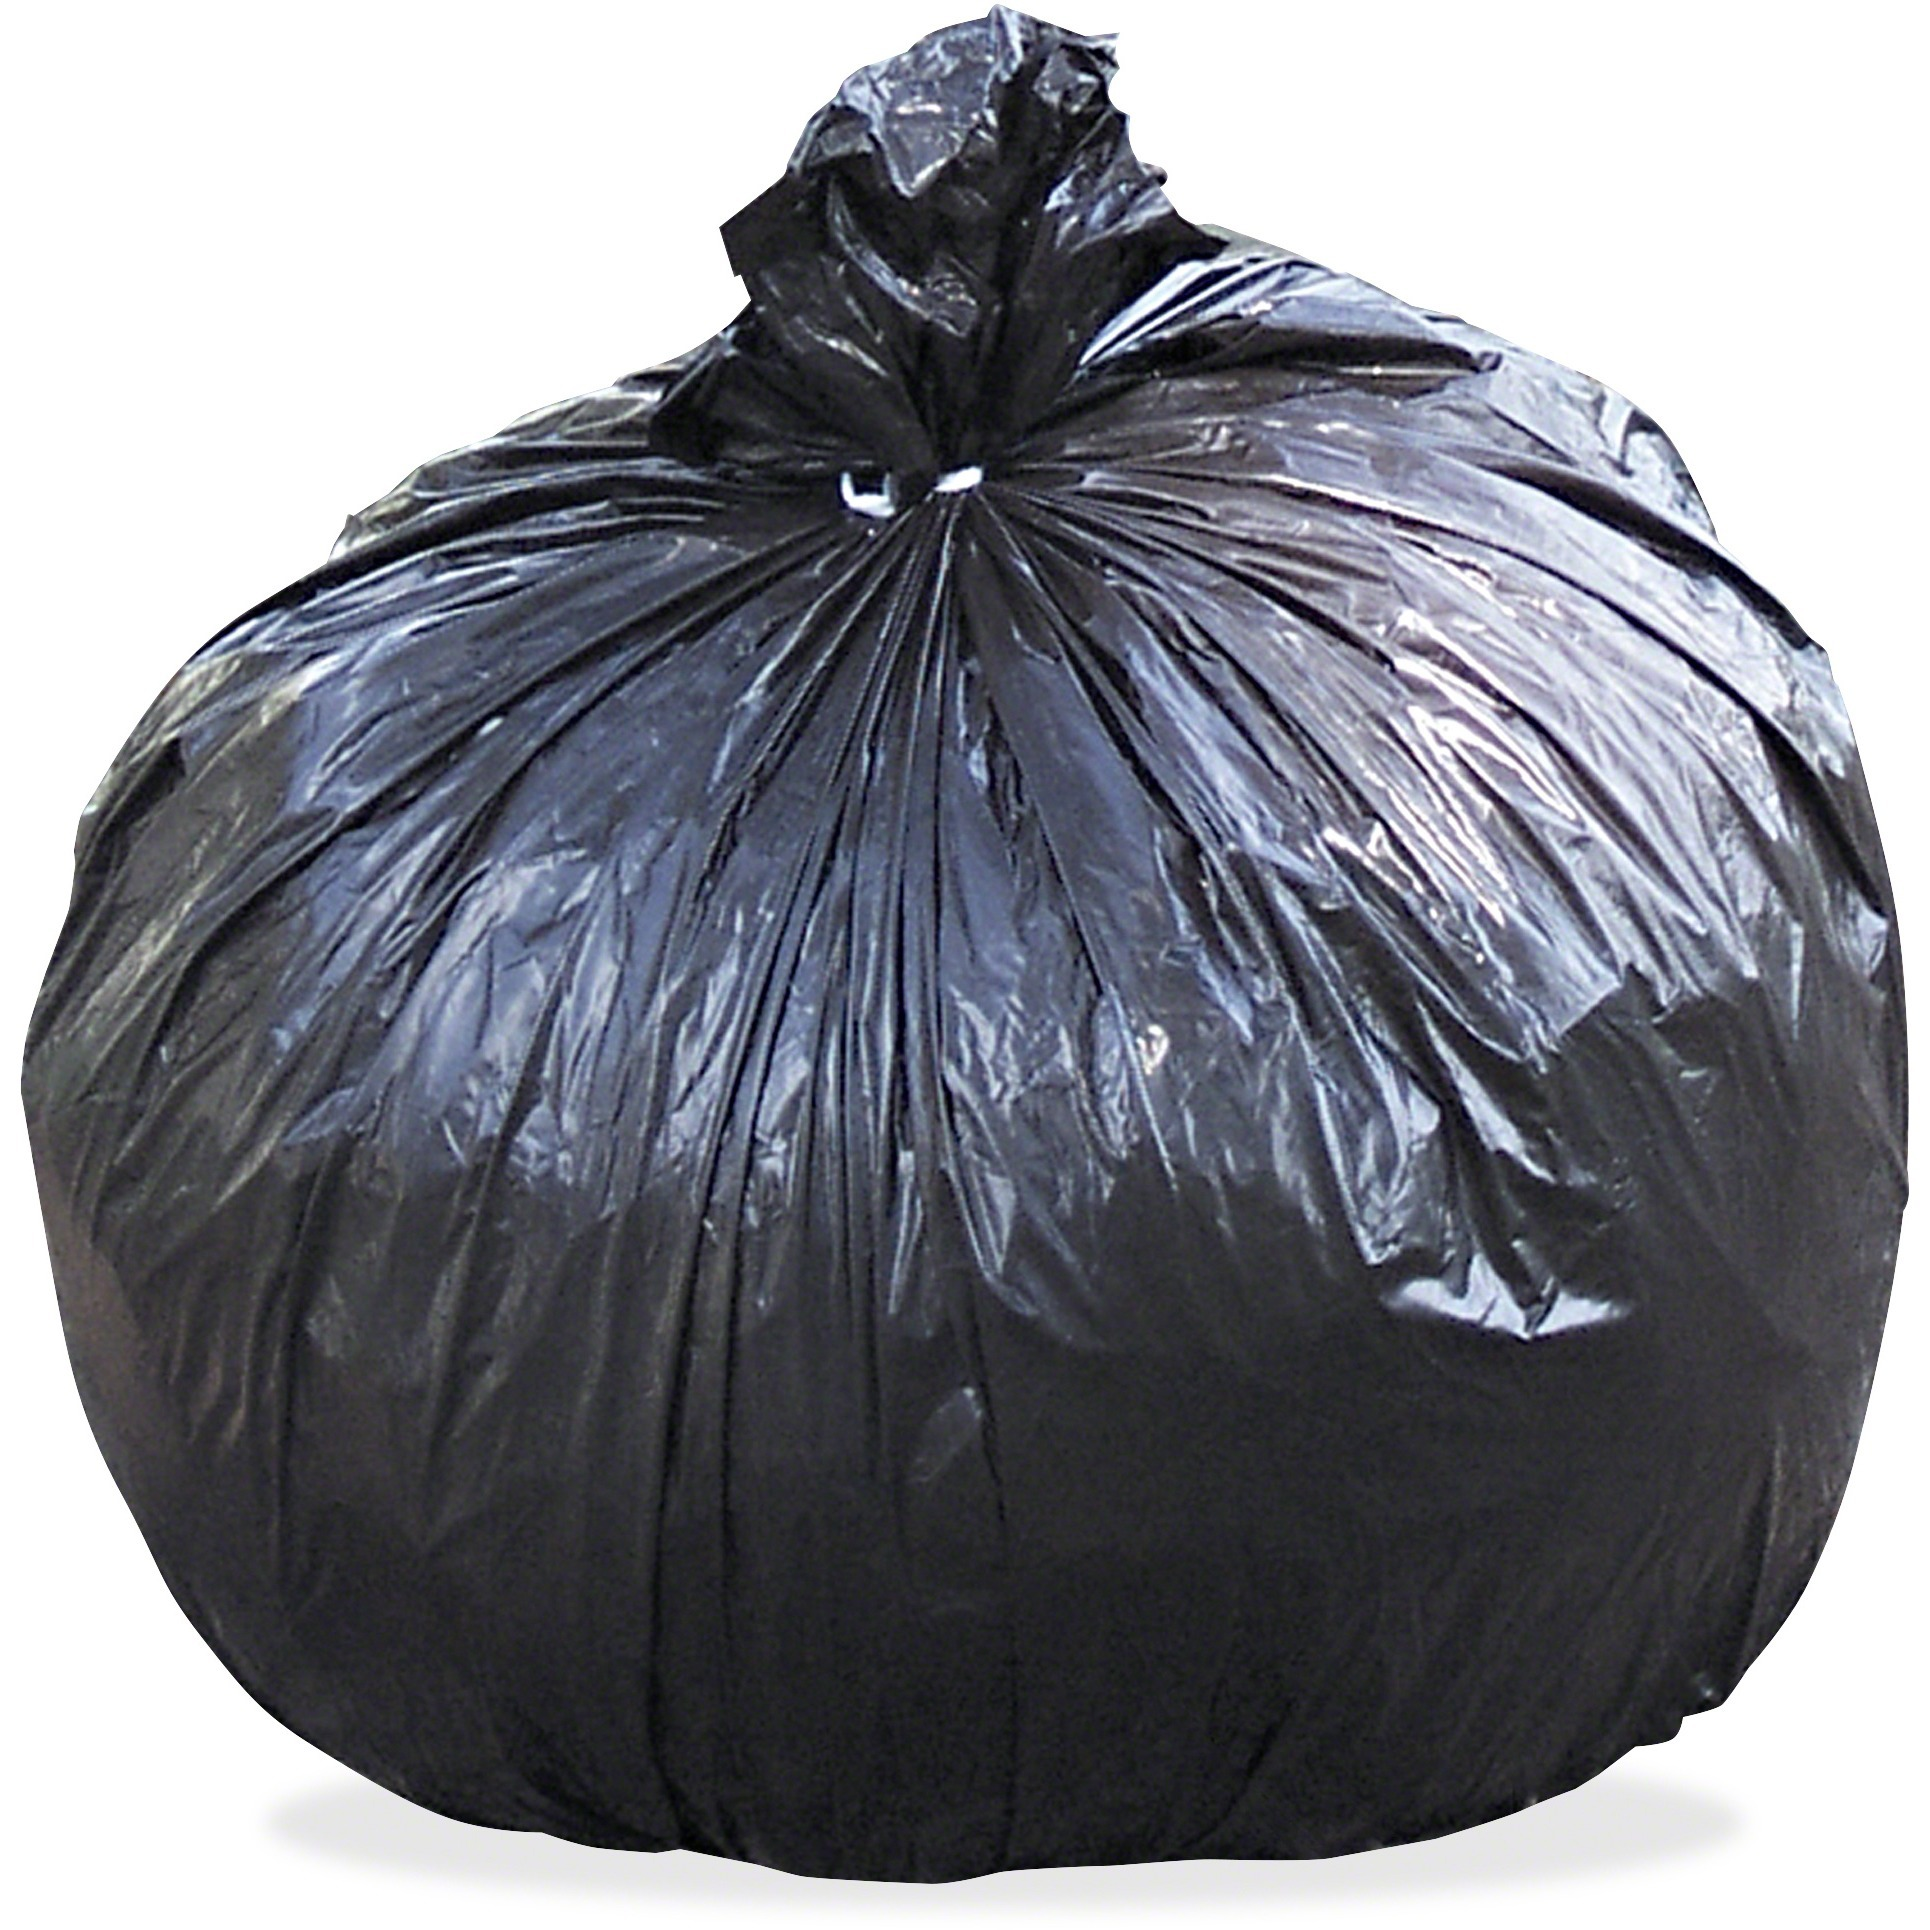 100% Recycled Plastic Garbage Bags, 56gal, 1.5mil, 43 x 49, Brown/Black, 100/CT